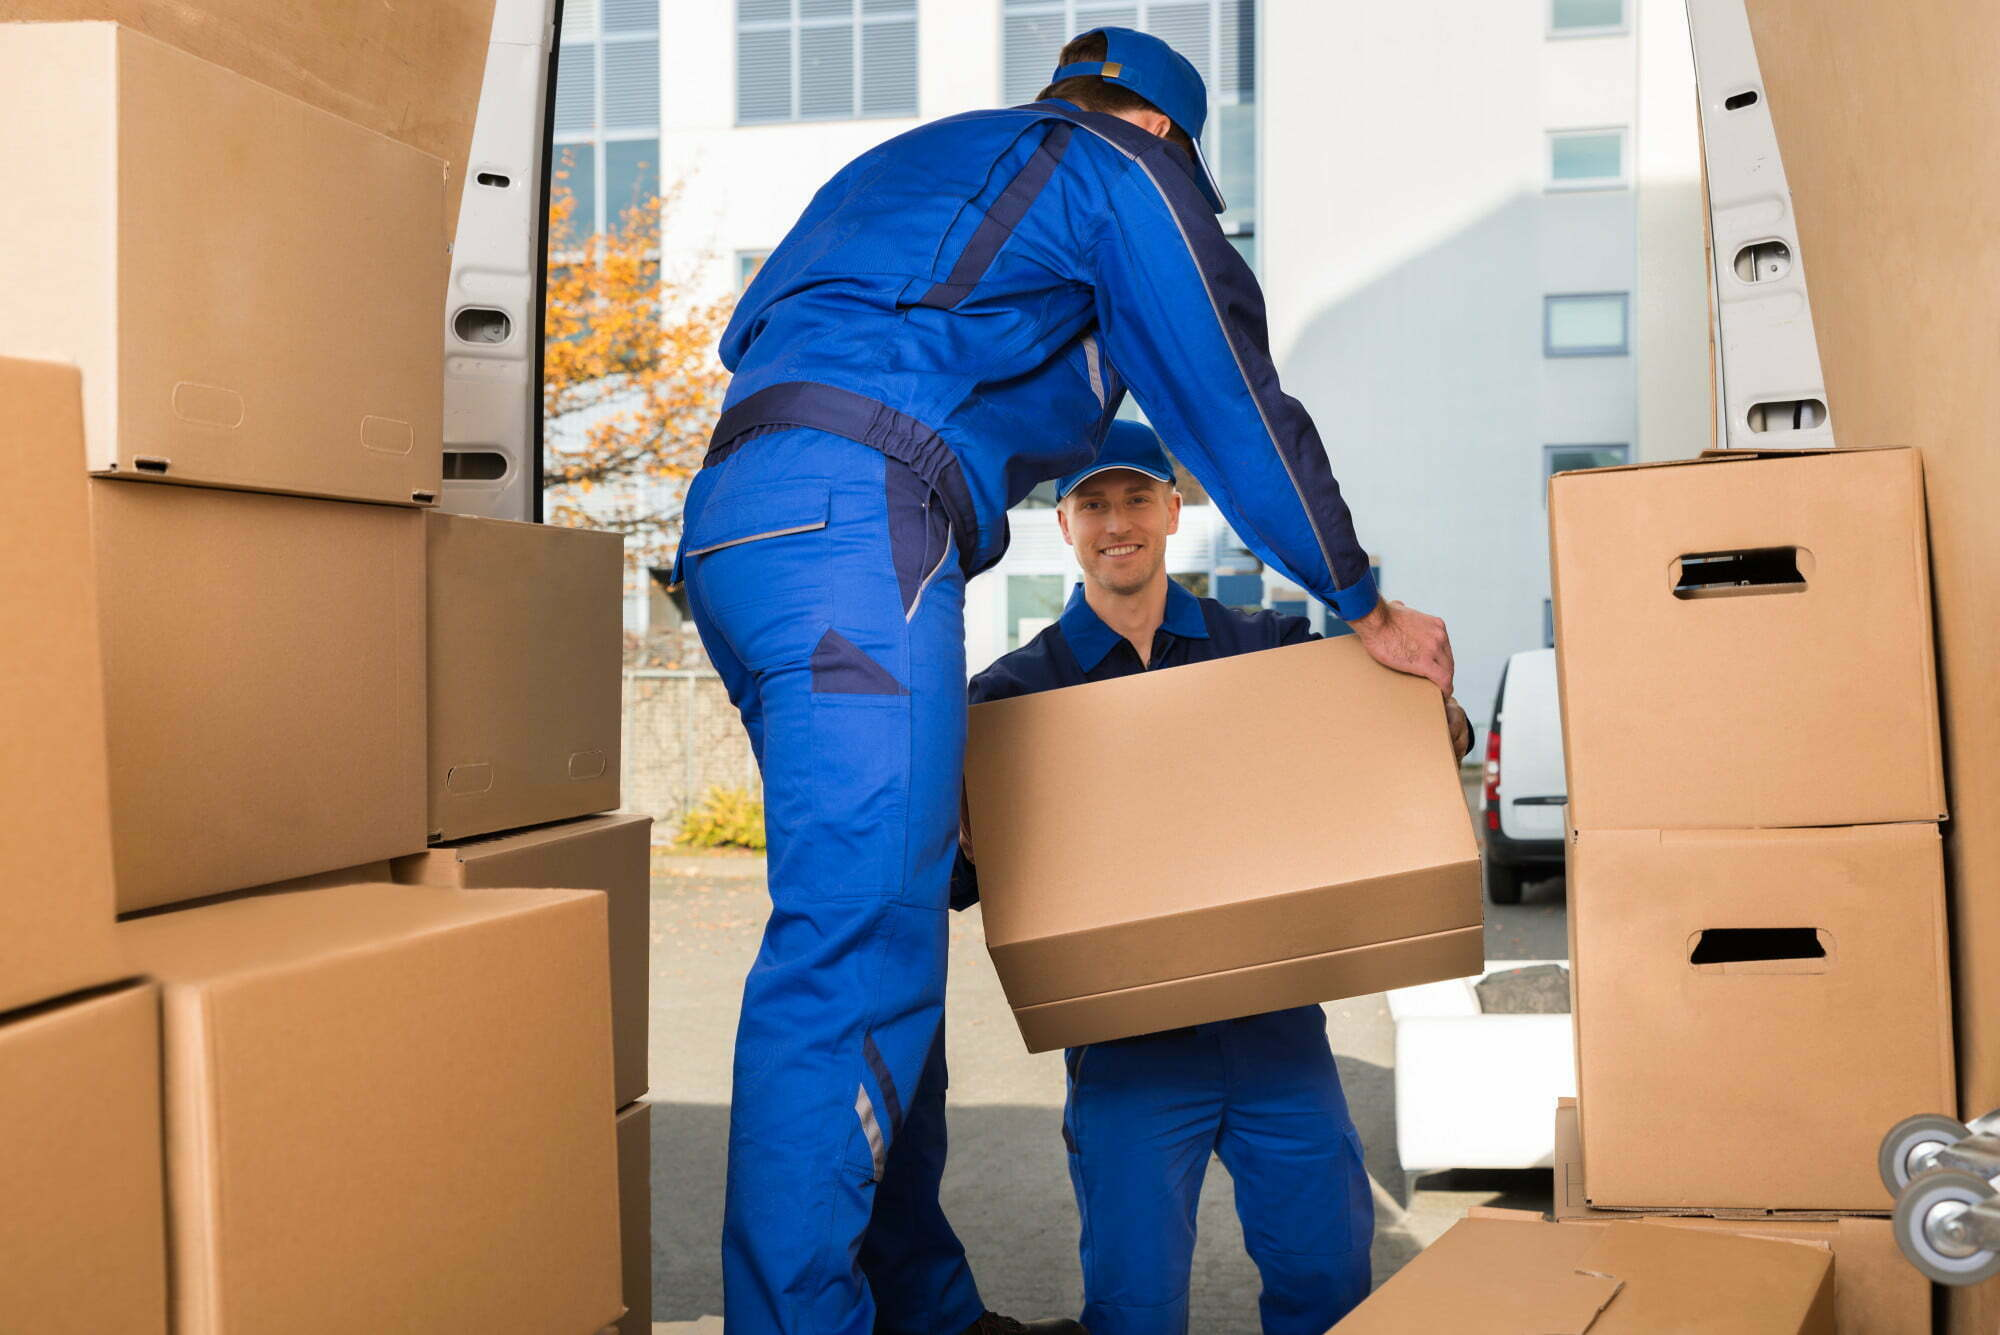 5 Common Mistakes to Avoid When Hiring a Moving Company